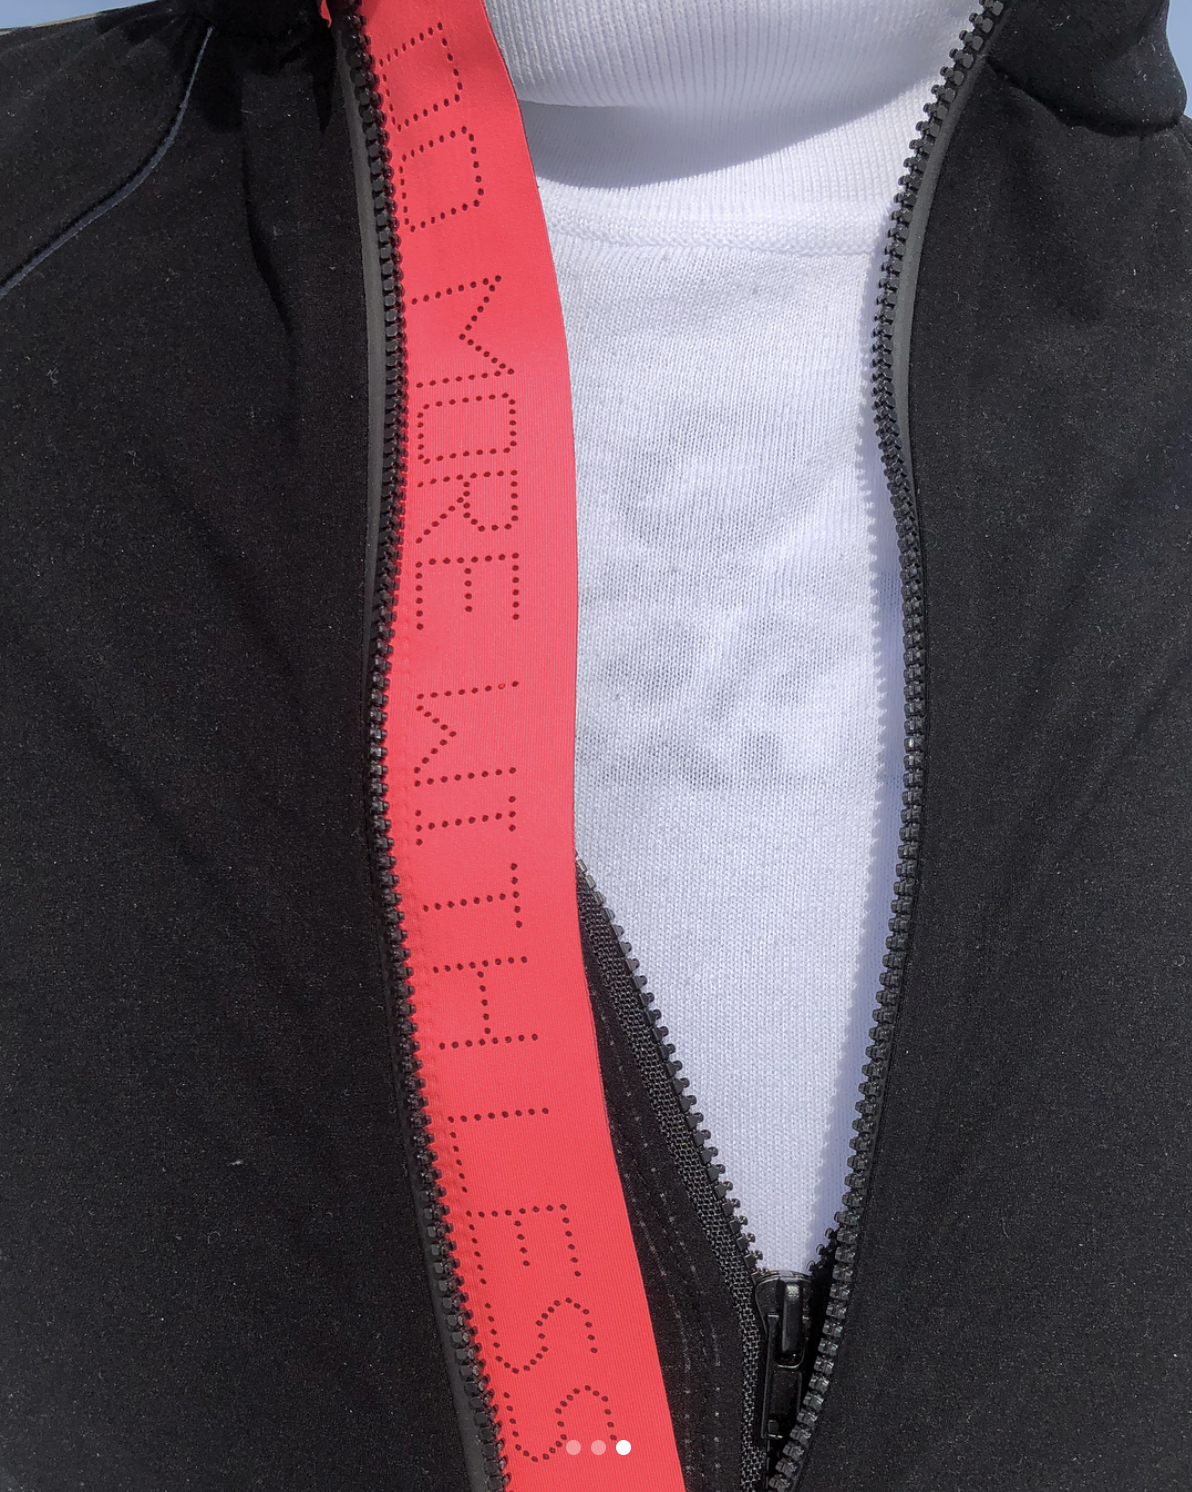 Norman Foster collaborates with Rapha to create cross-country ski wear